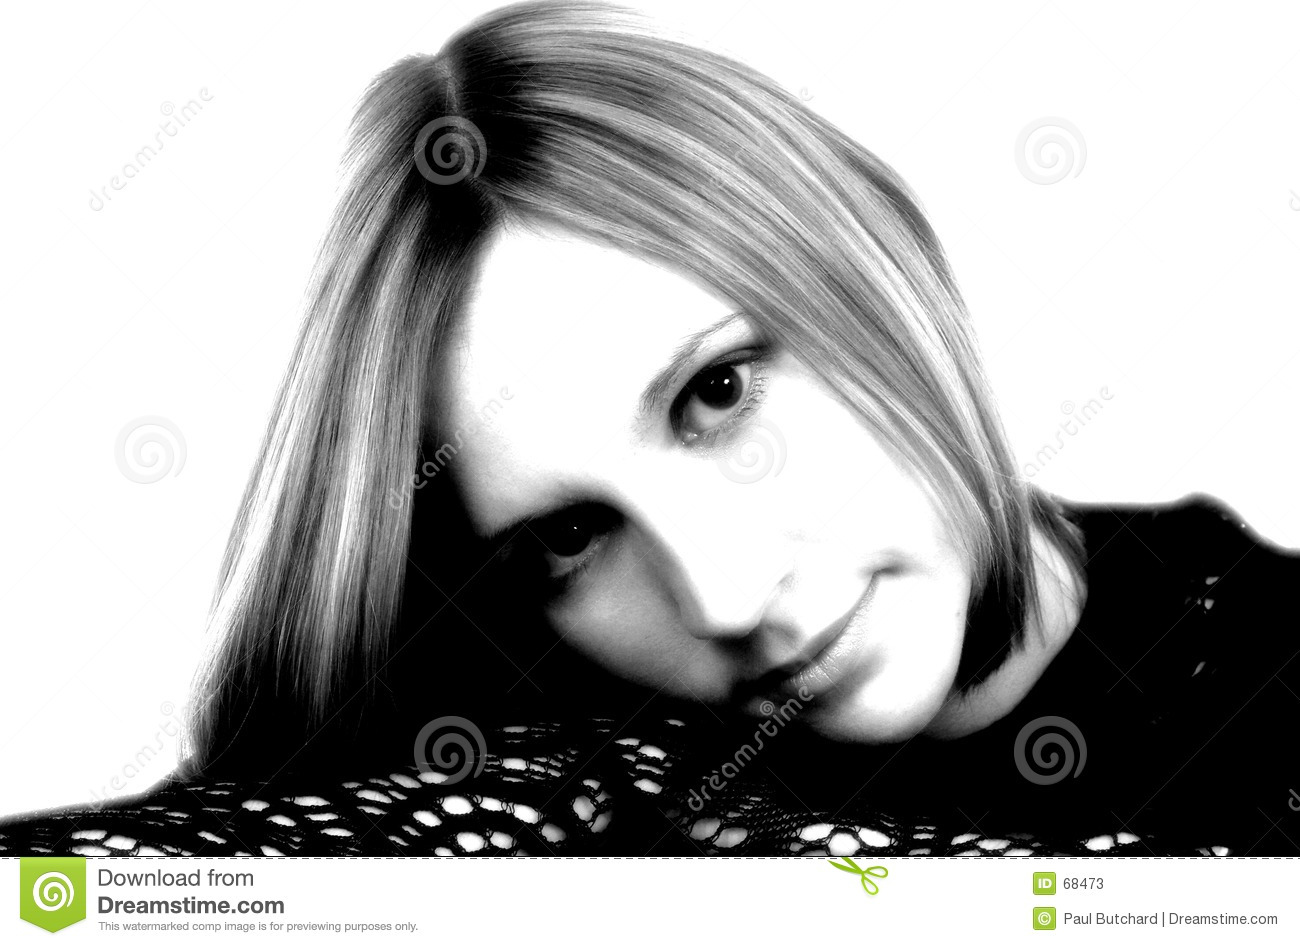 Black white portrait with high contrast